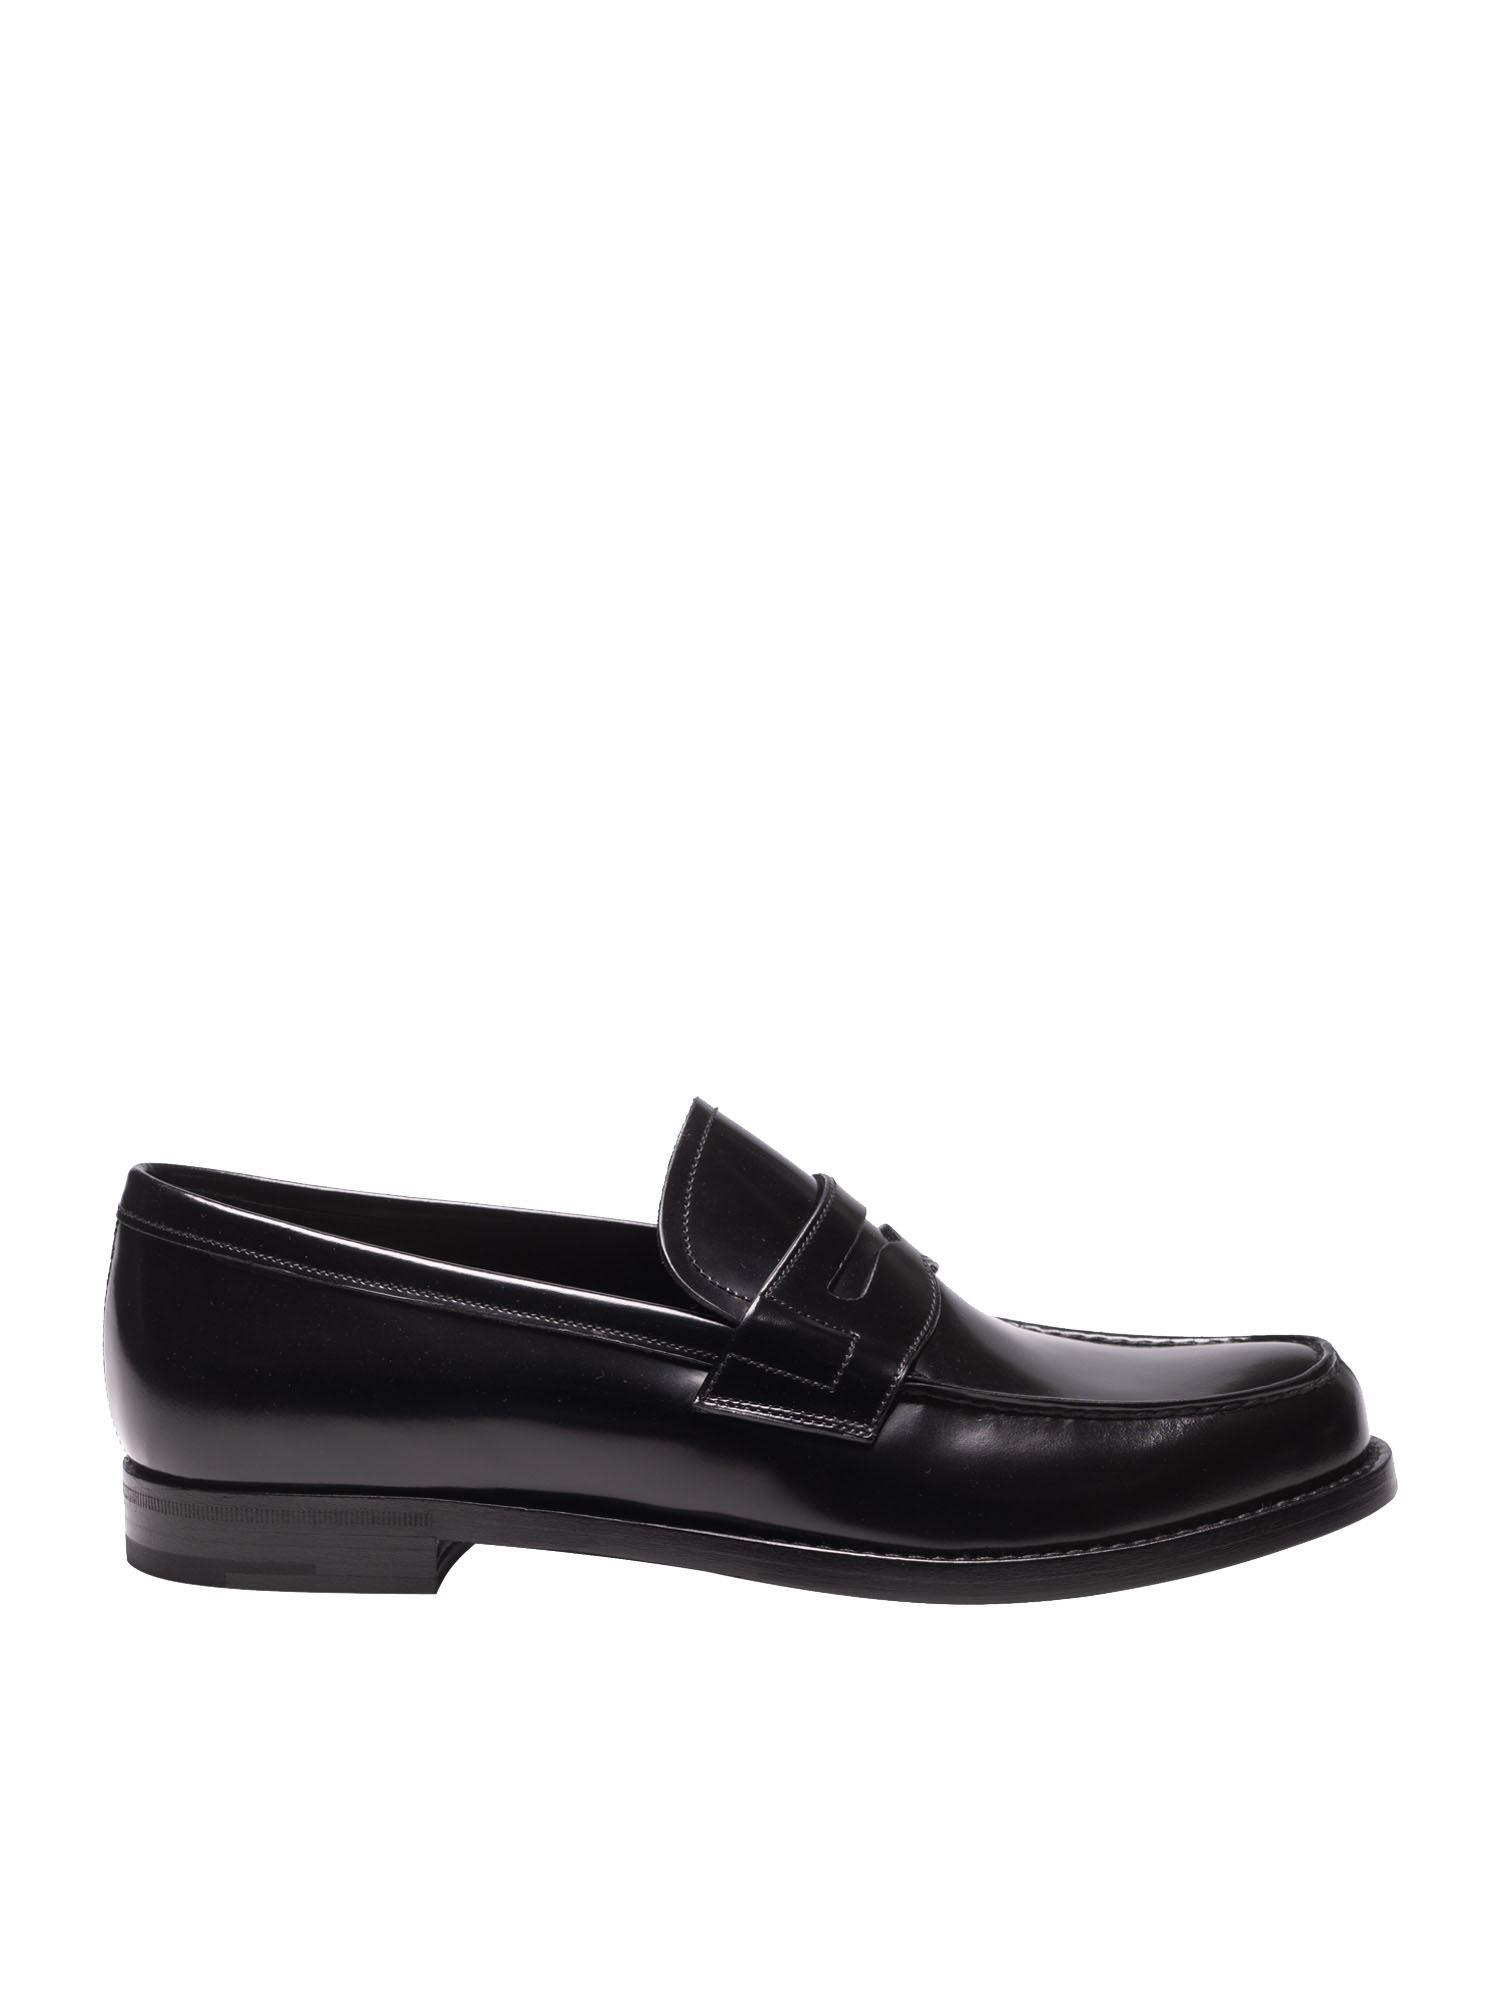 b348f43a5c9 Prada Black Brushed Leather Loafers in Black for Men - Save 25% - Lyst